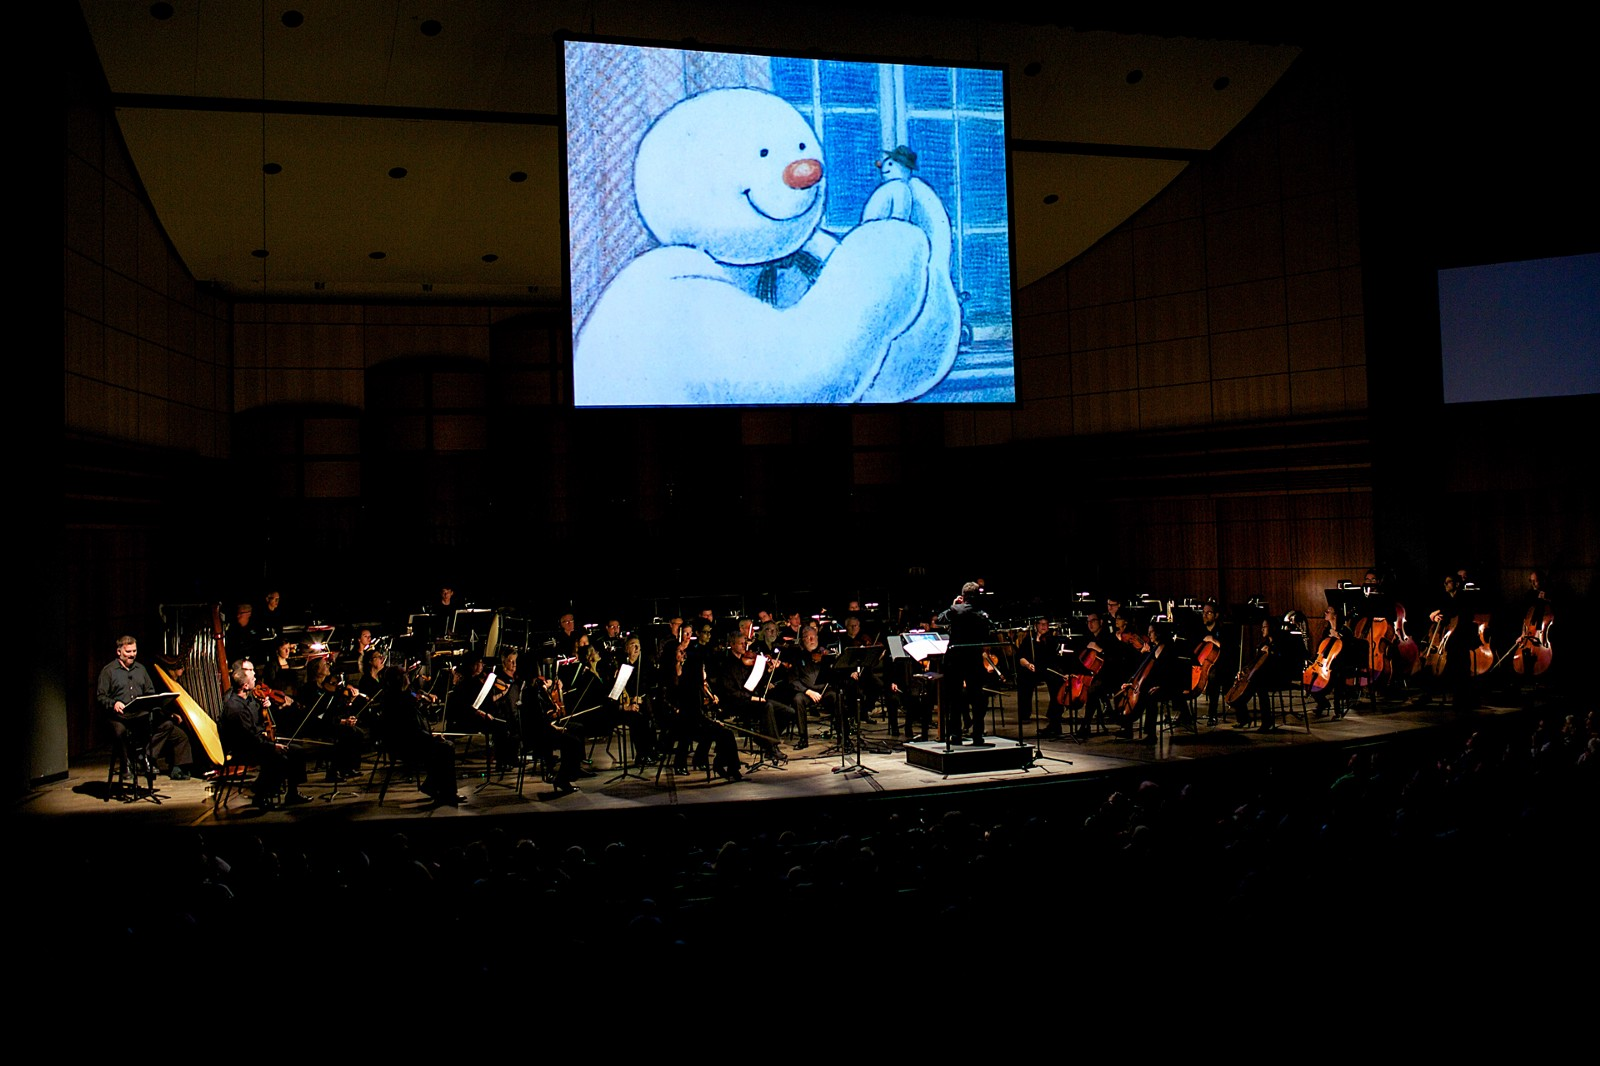 Bring your kids to the symphony? Absolutely!